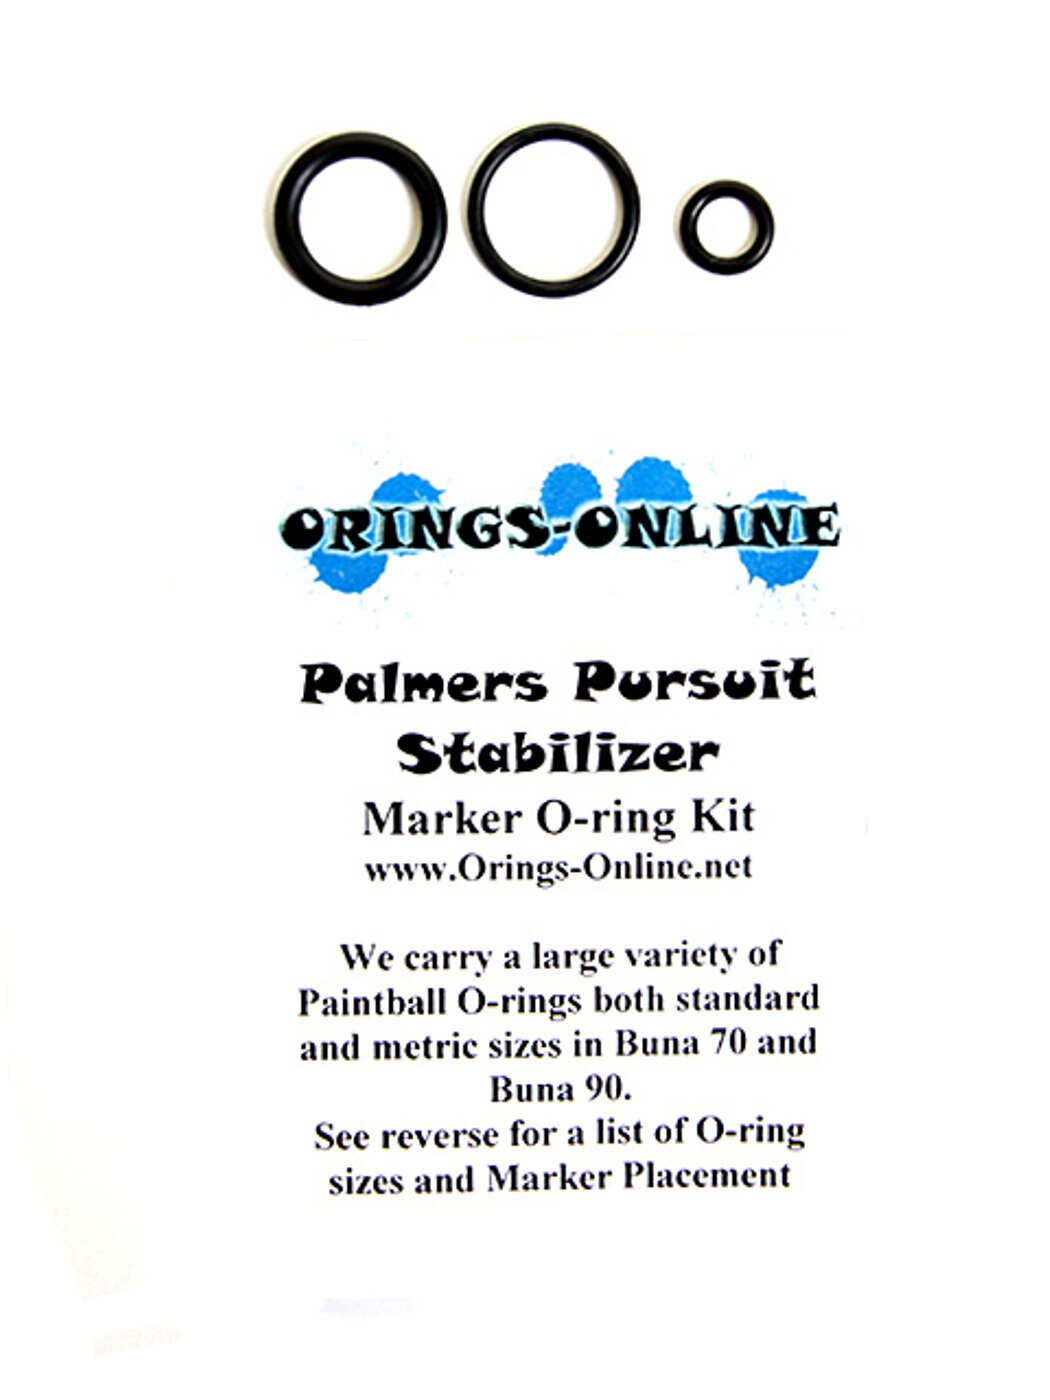 Palmers Pursuit Stabilizer O-ring Kit